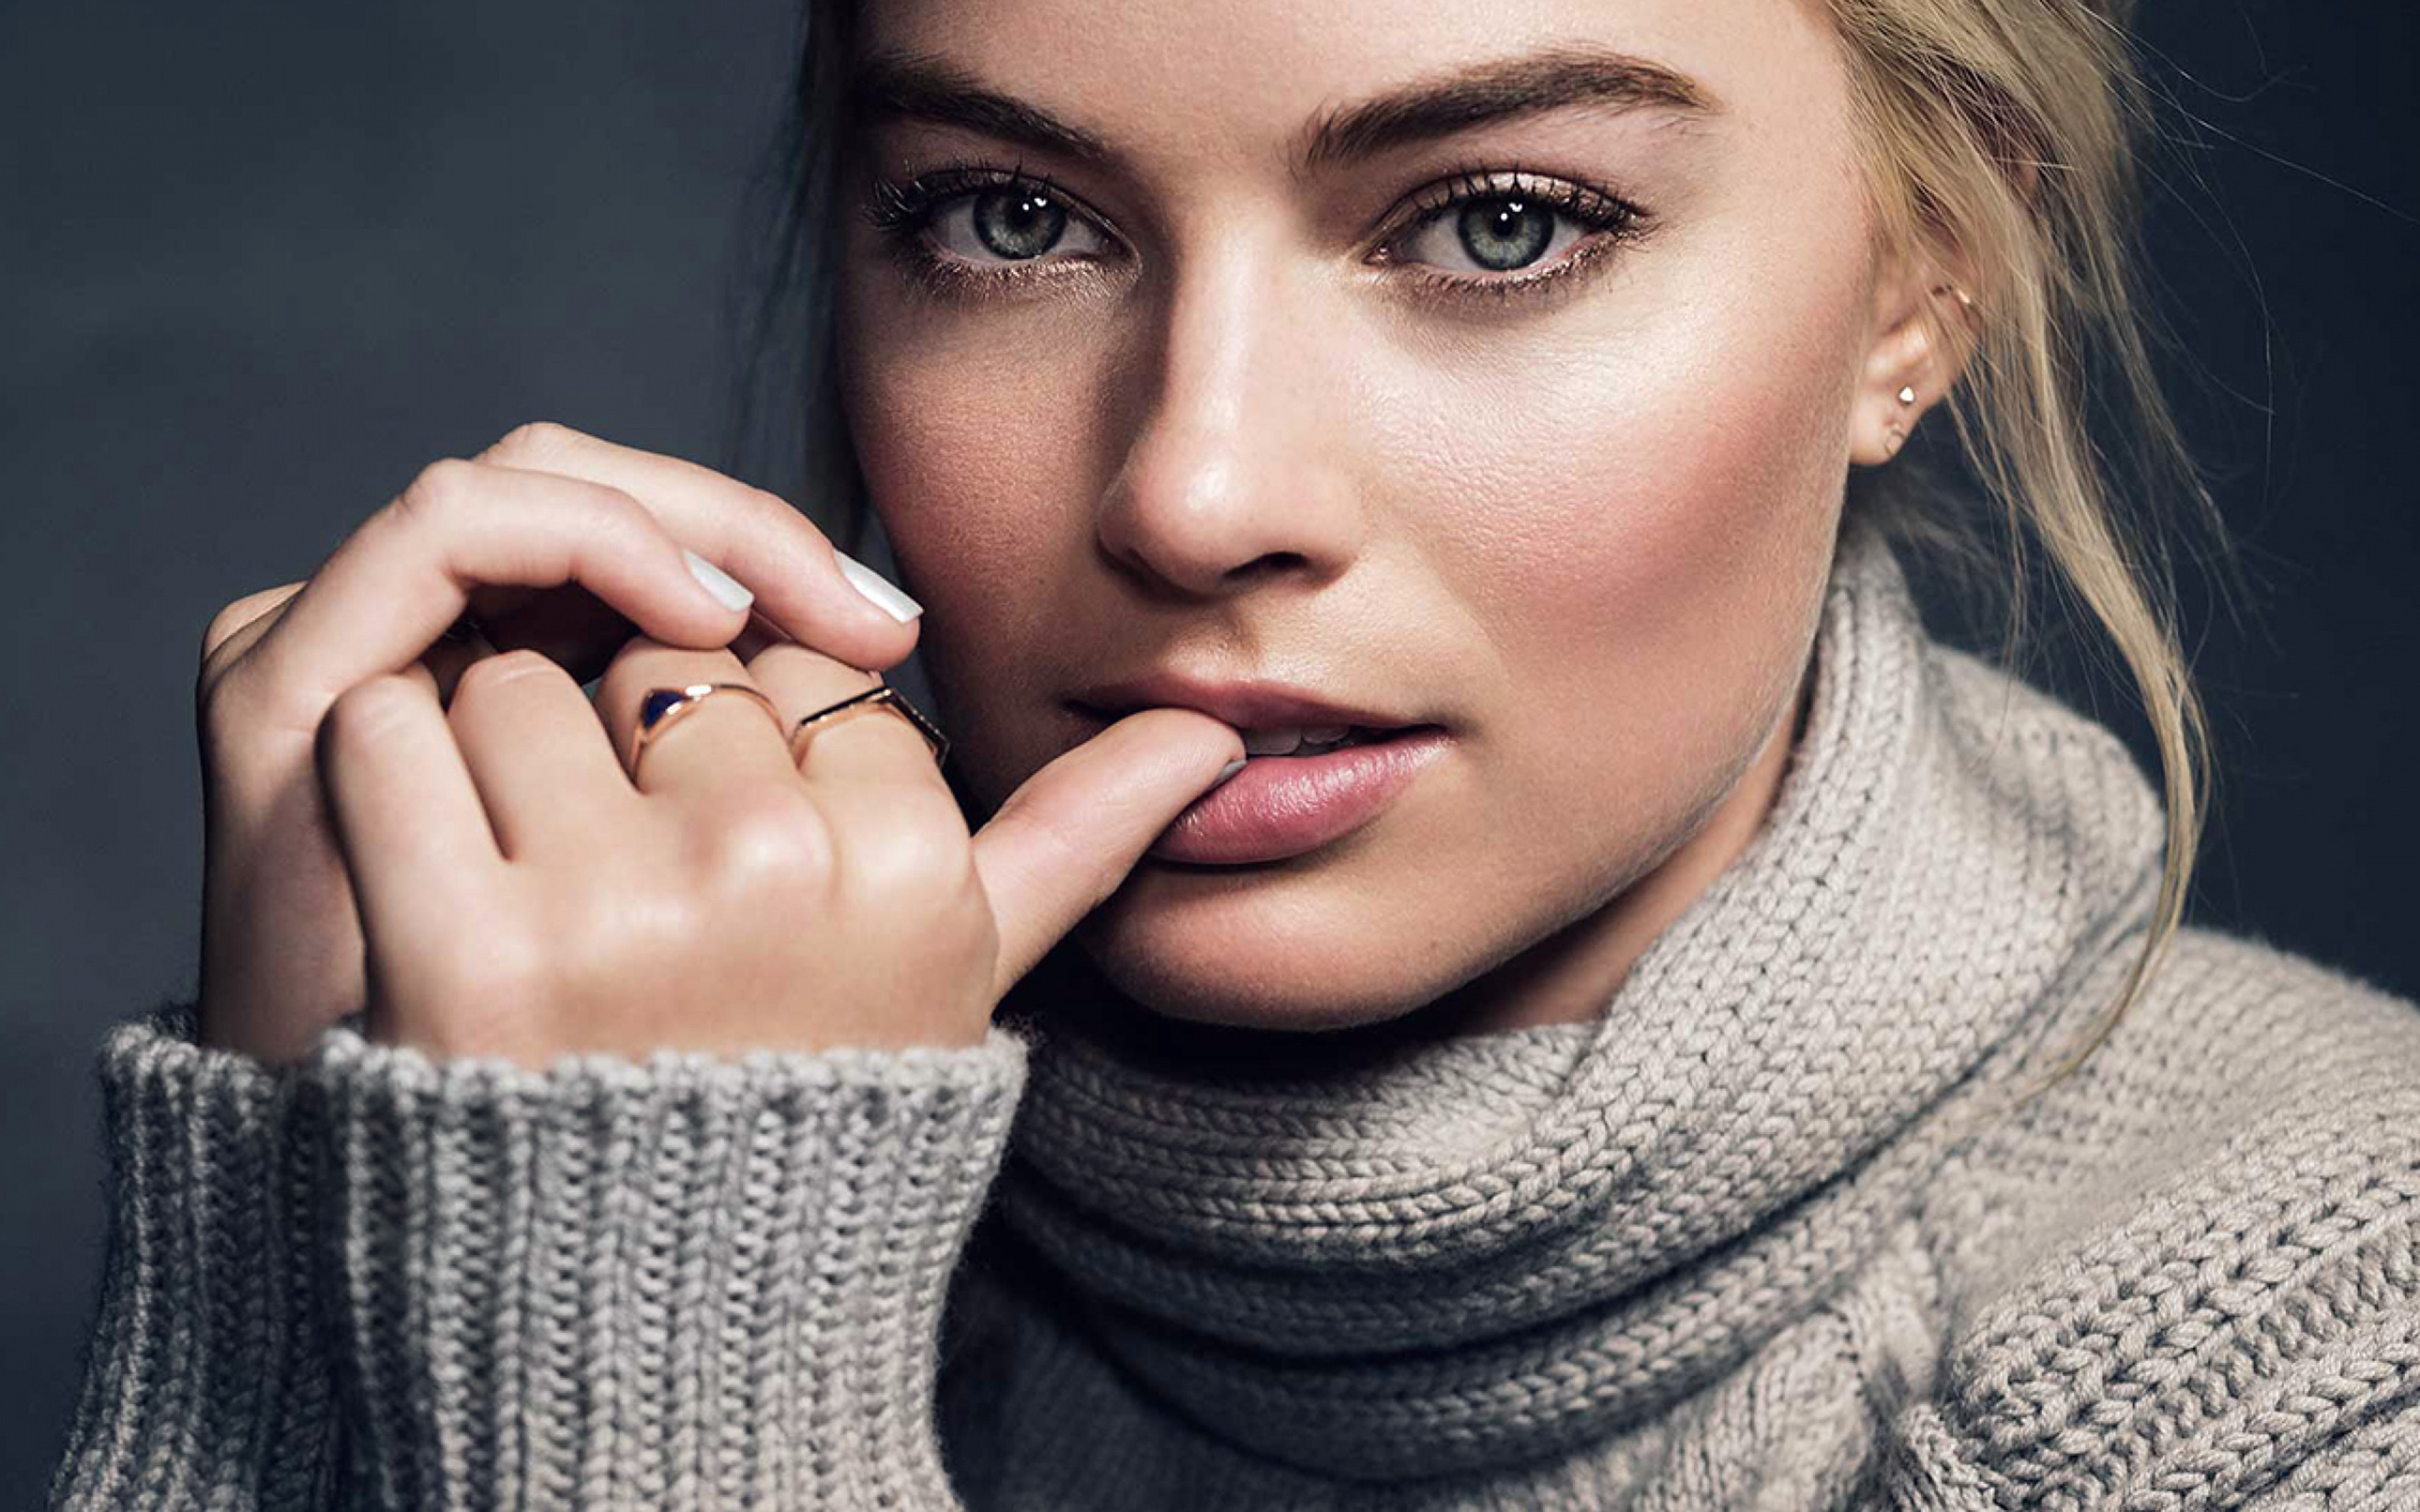 Wallpaper Fall Hj26 Margot Robbie Photoshoot Celebrity Gril Wallpaper